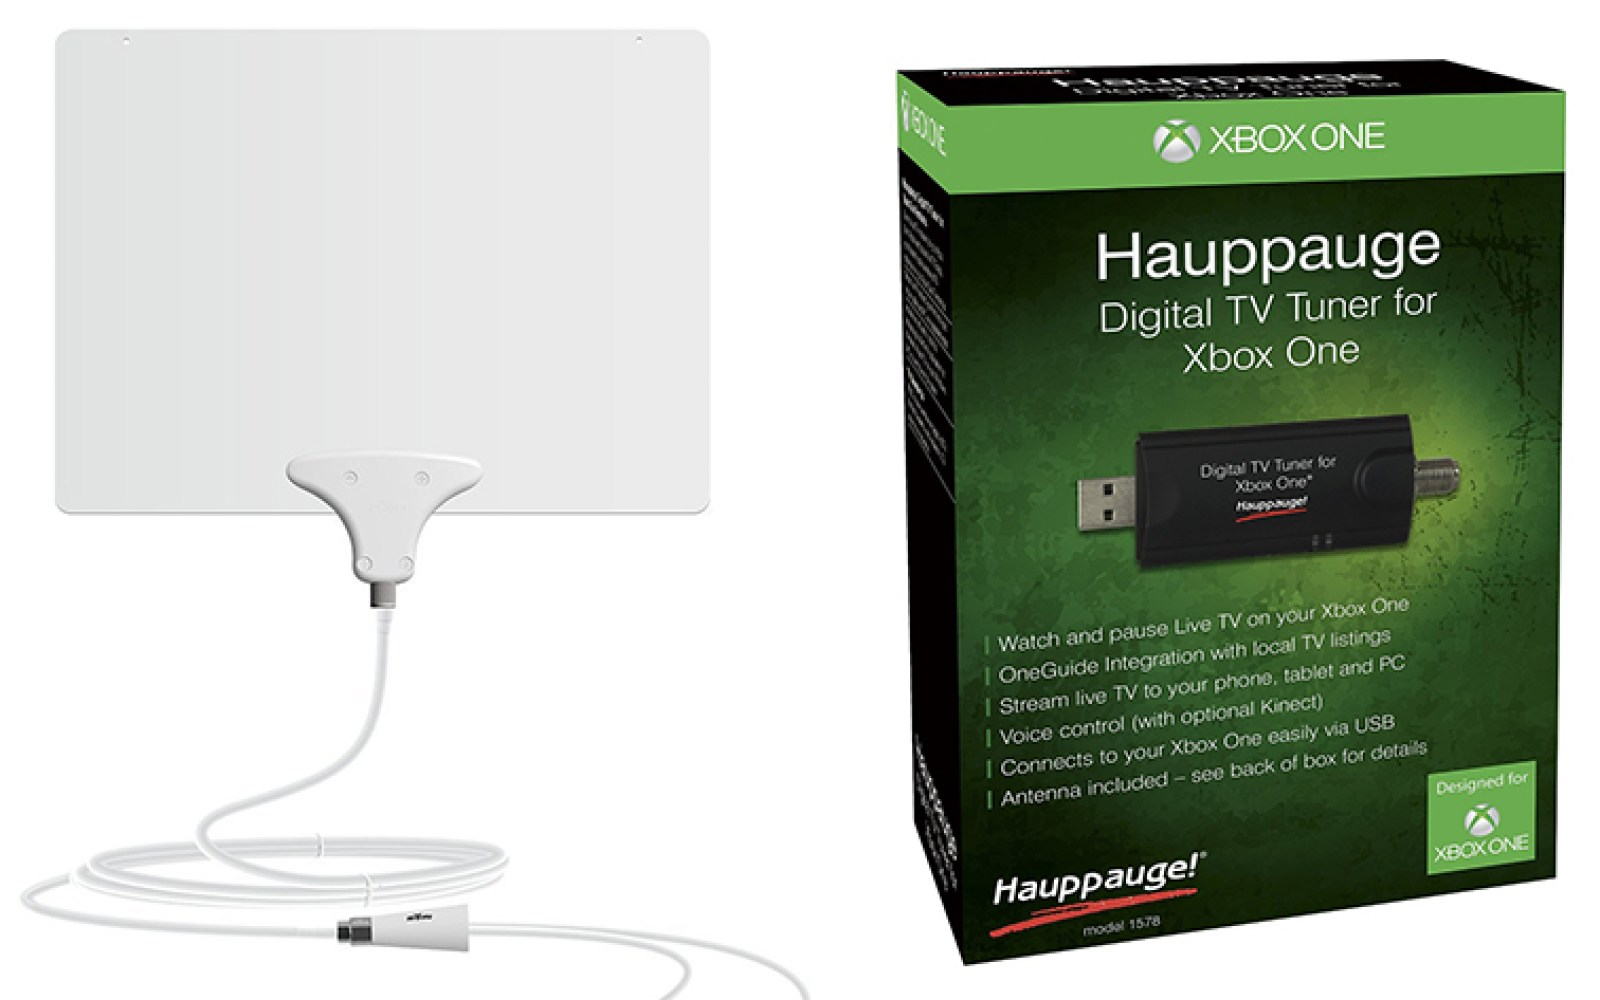 Now Any Xbox One Can Receive Over The Air Hd Channels With This New